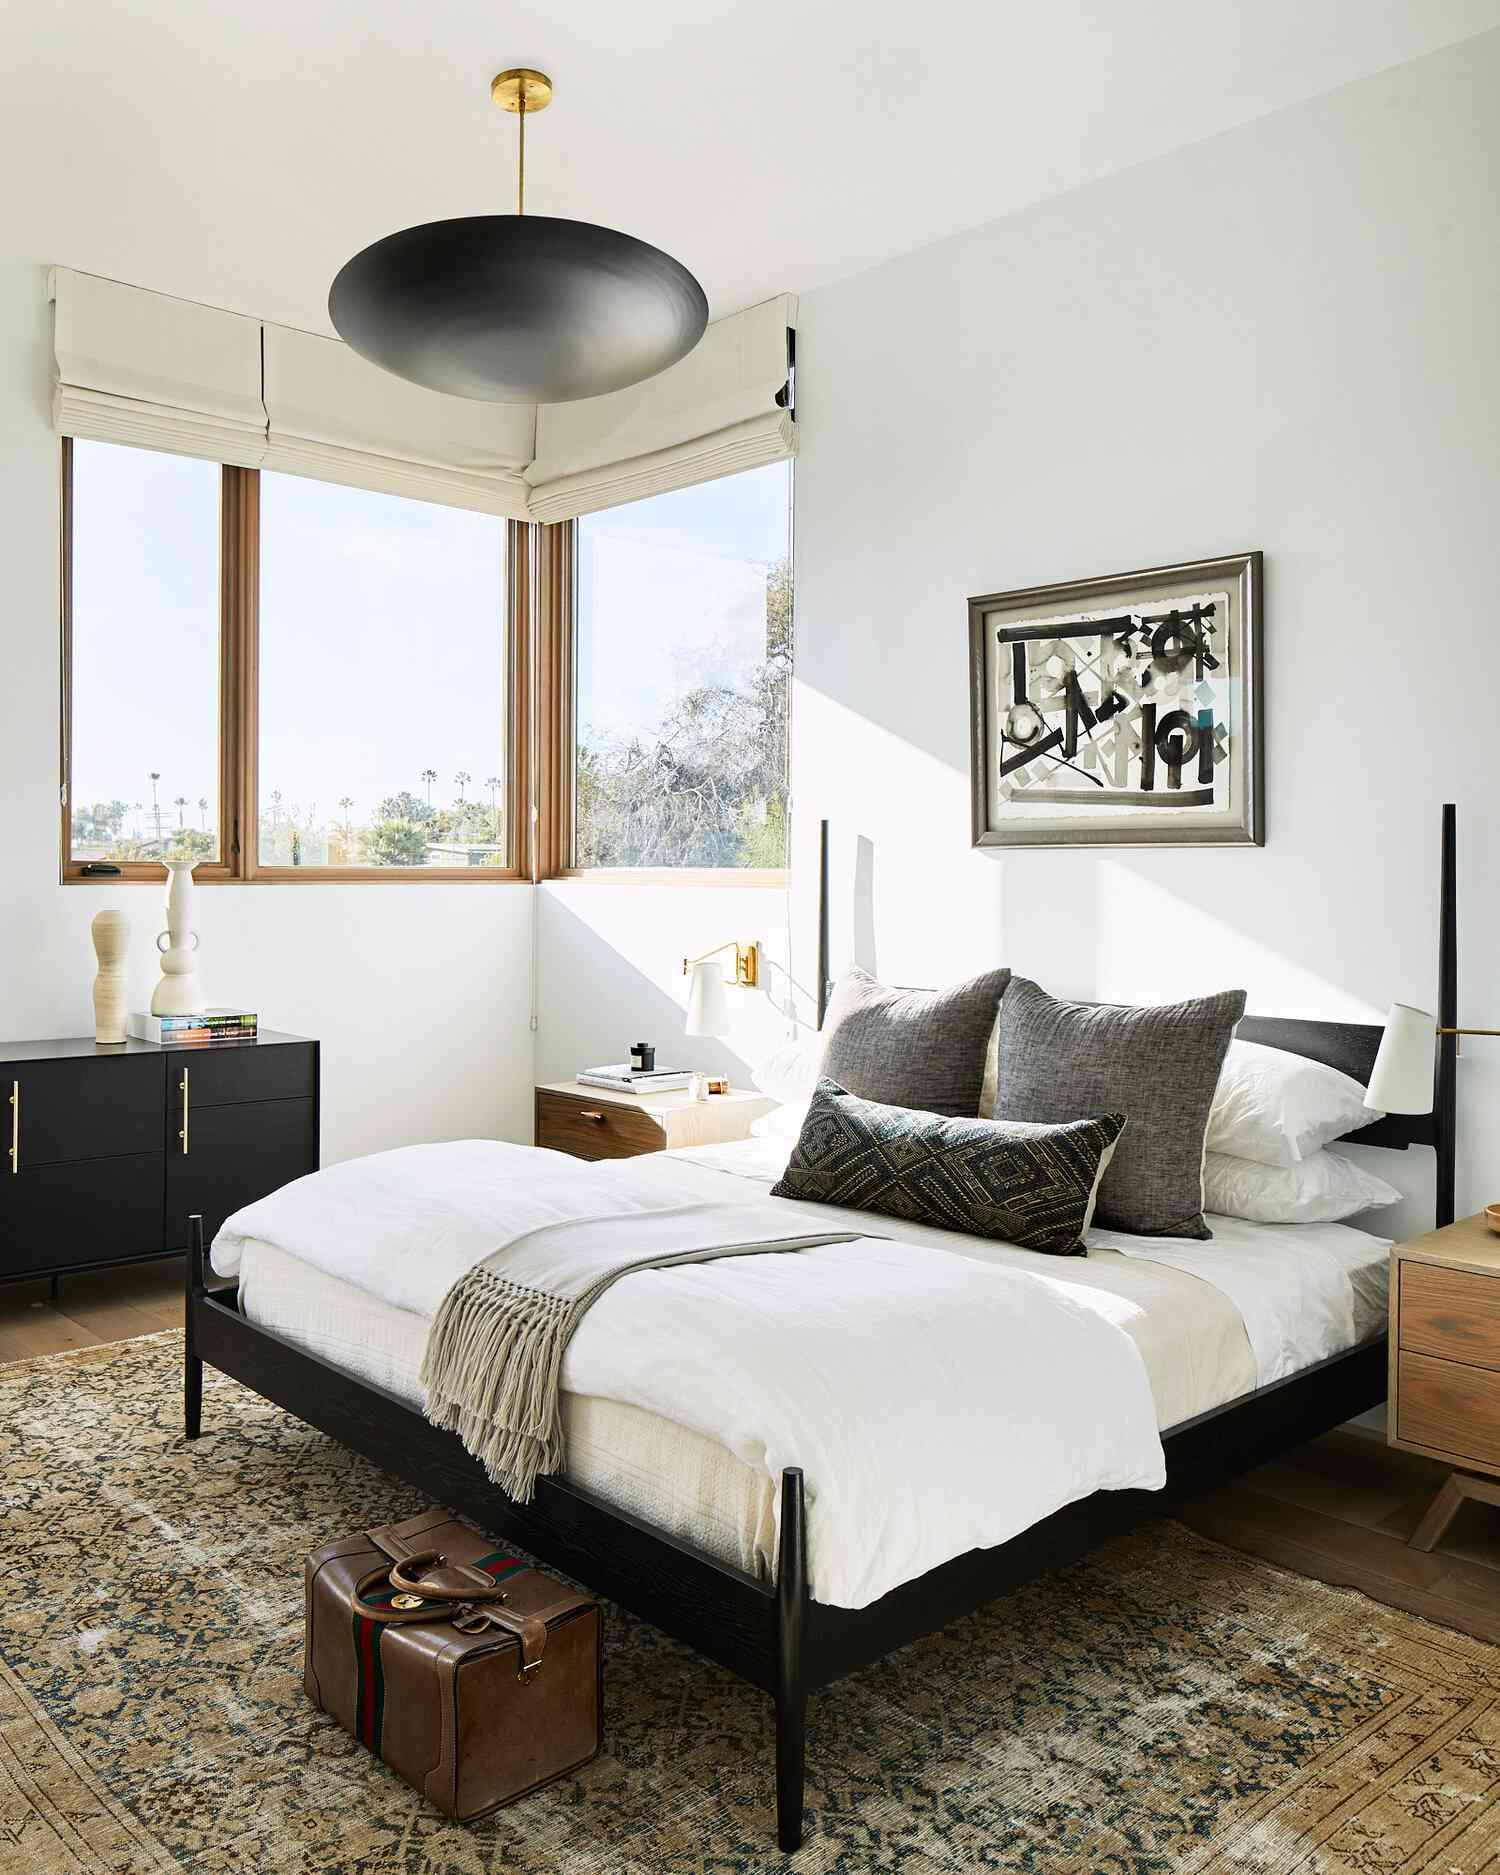 A bedroom with a bold black dome chandelier